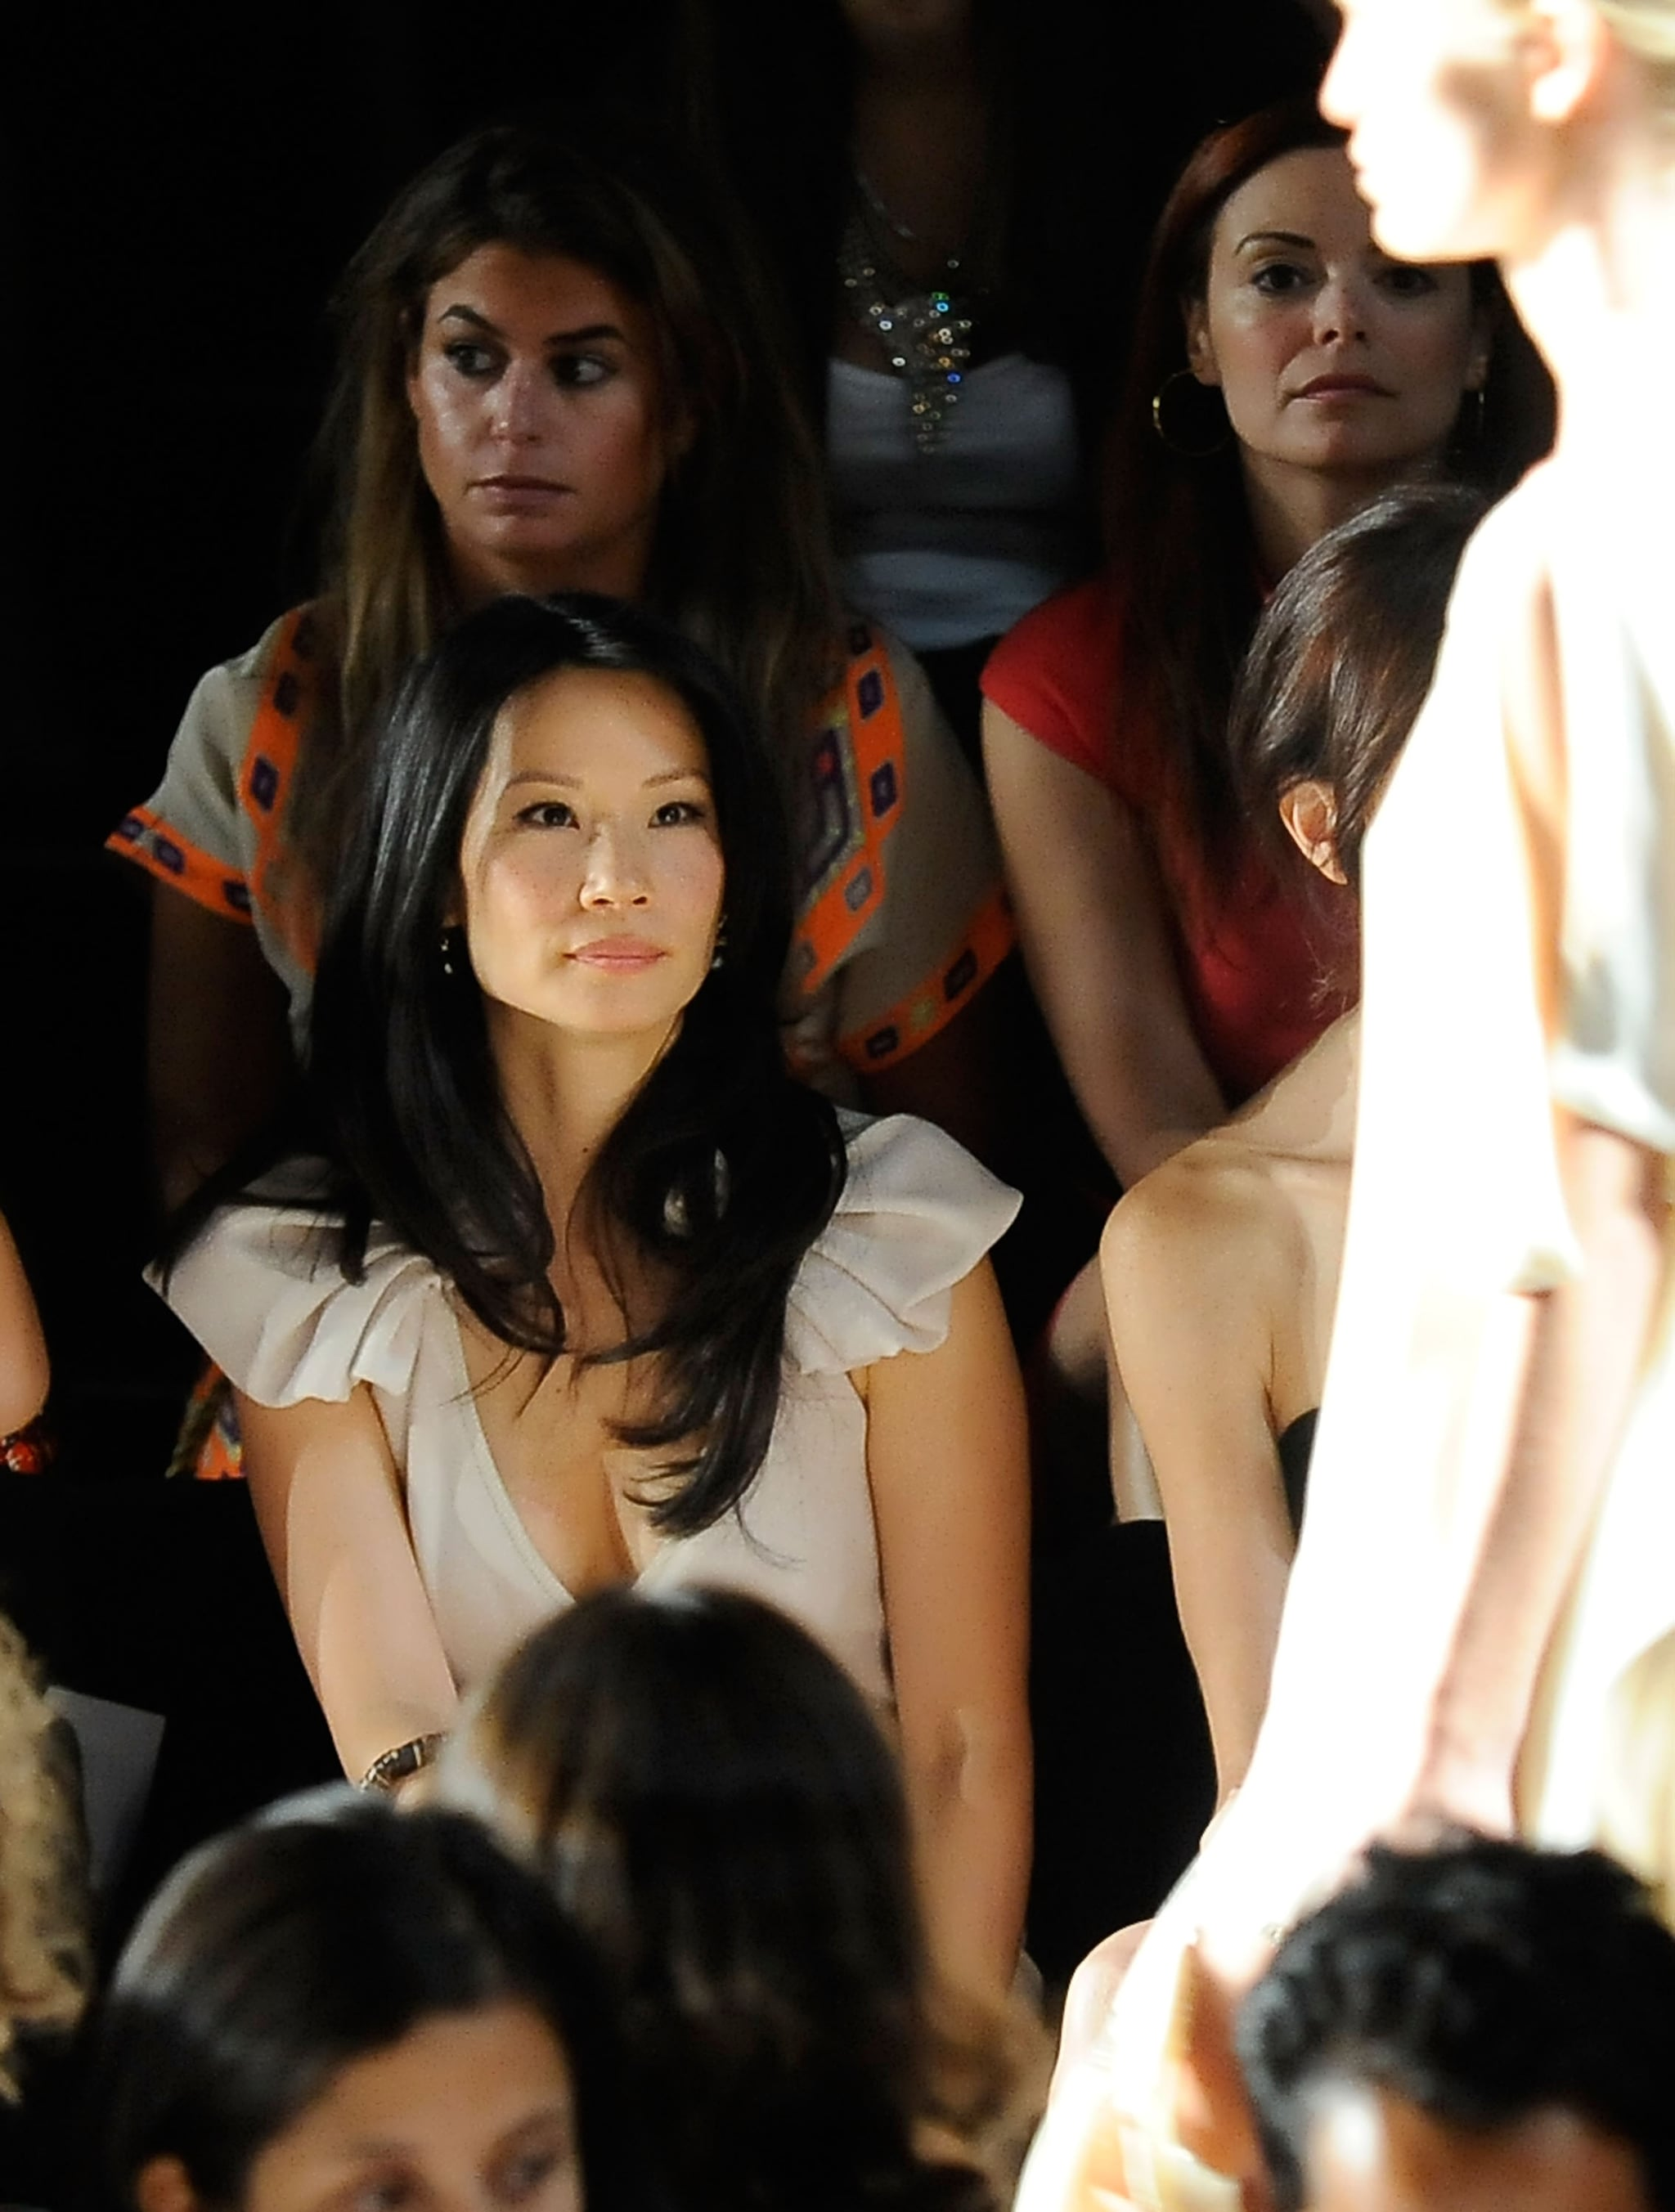 photos of celebrity guests from new york fashion week